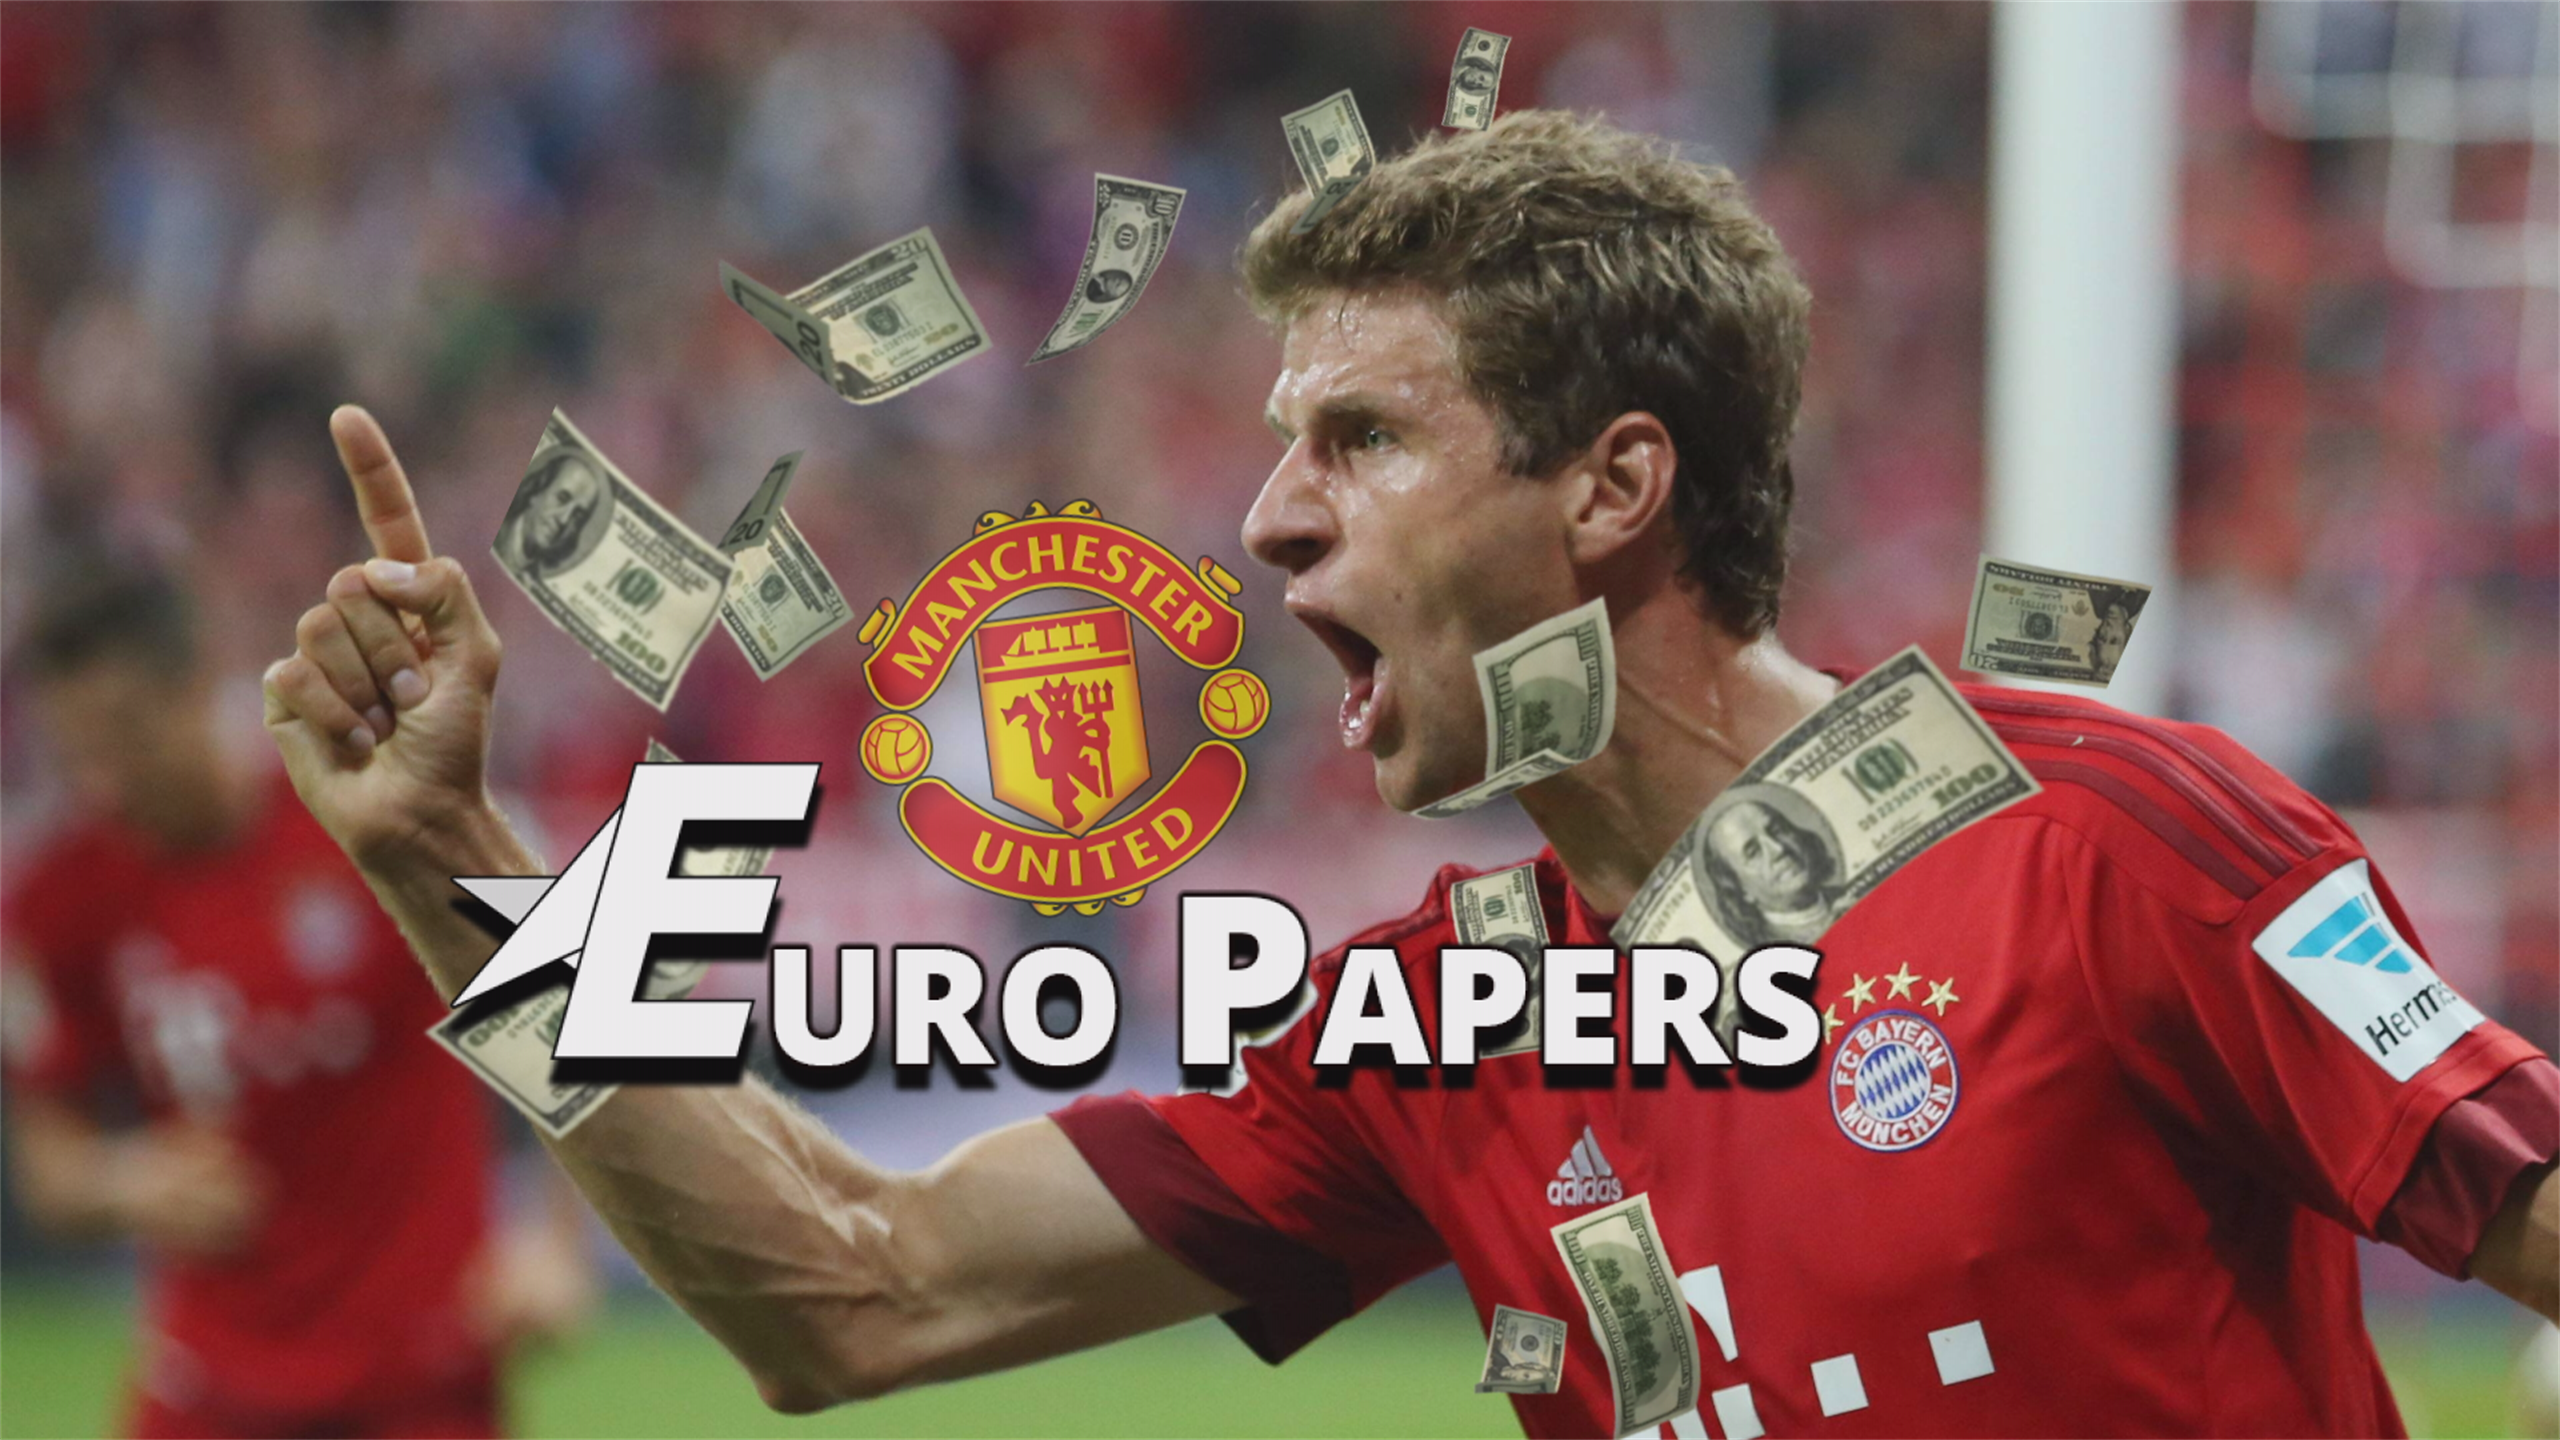 Man United miss out on Pedro - bid €85m for Muller! - Euro Papers